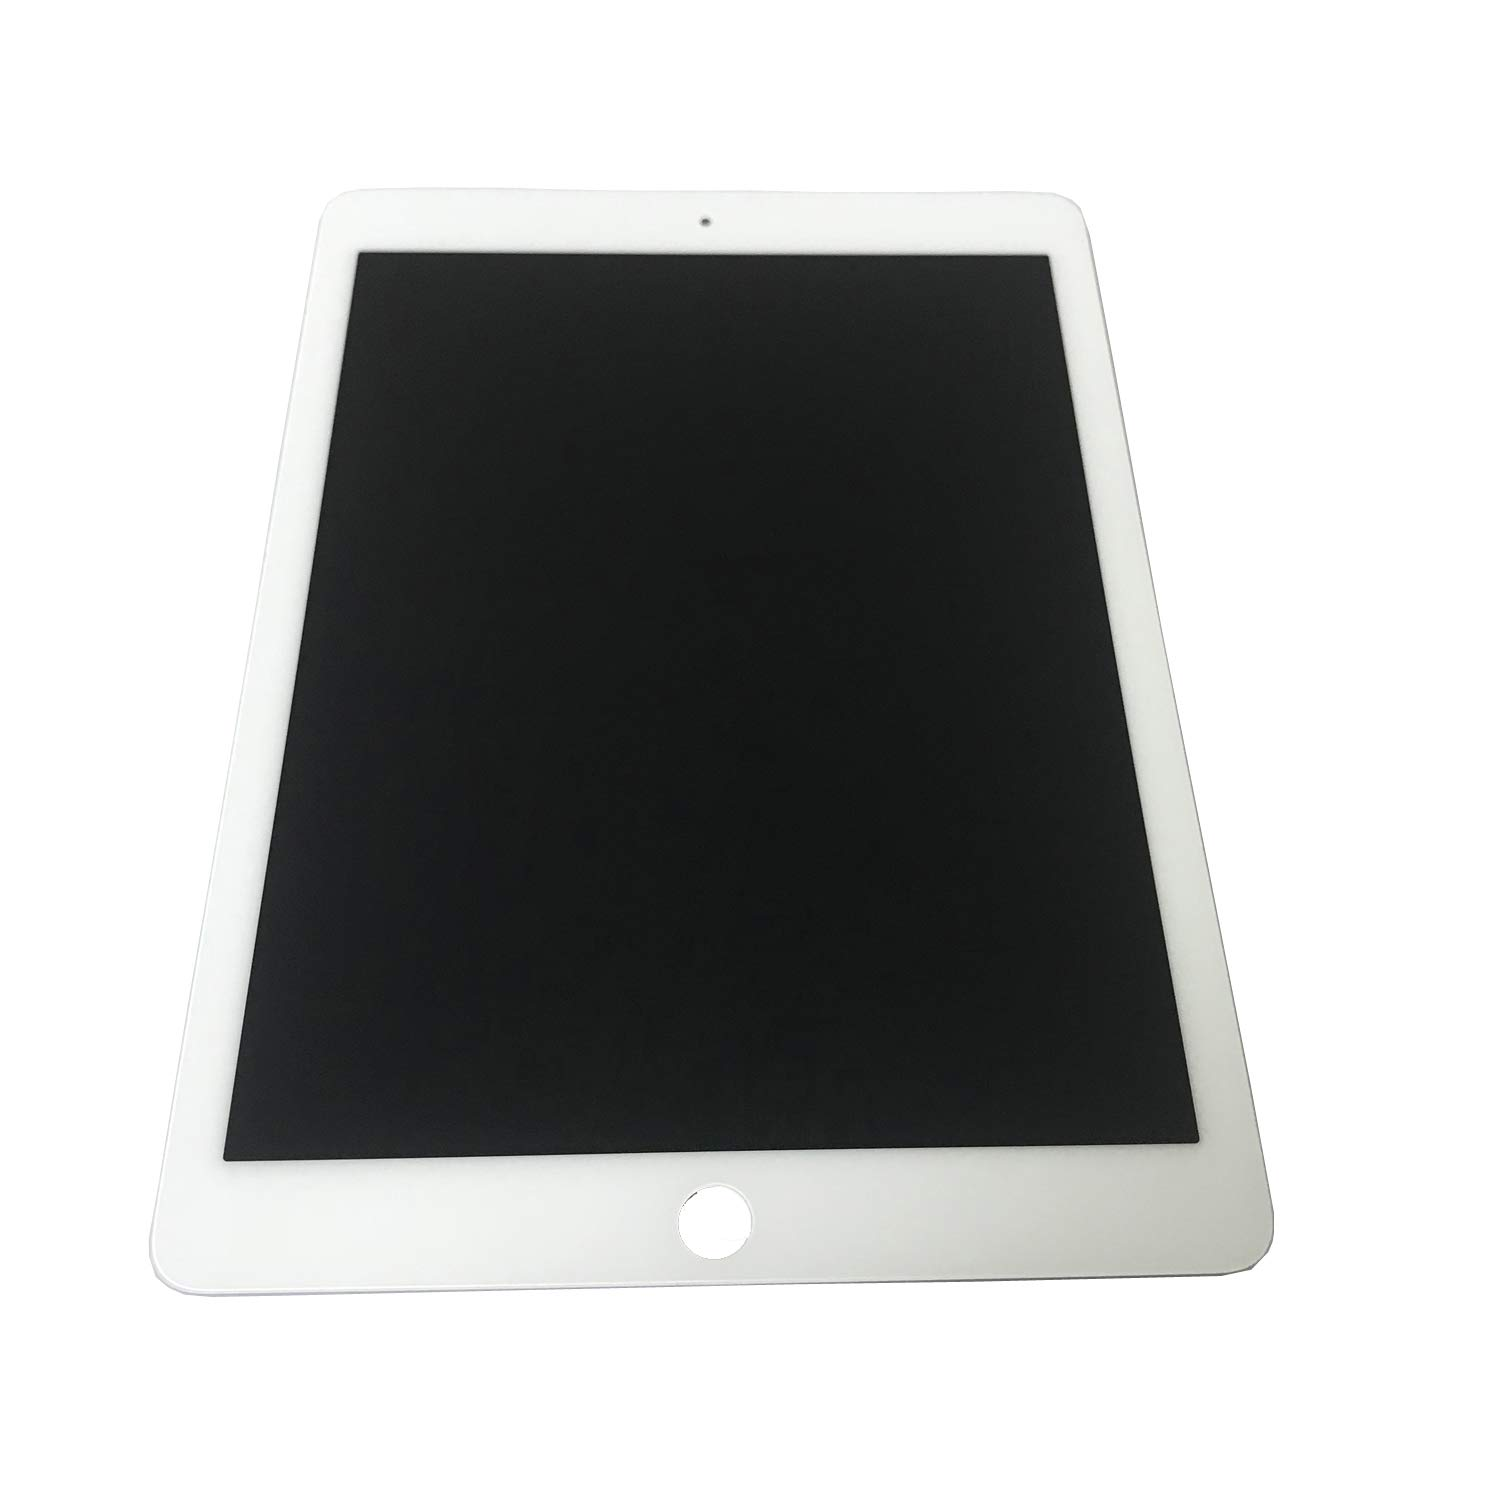 for Ipad 6 air 2 A1567 A1566 LCD Screen Touch Digitizer LED Display Panel Assembly 9.7 inch White